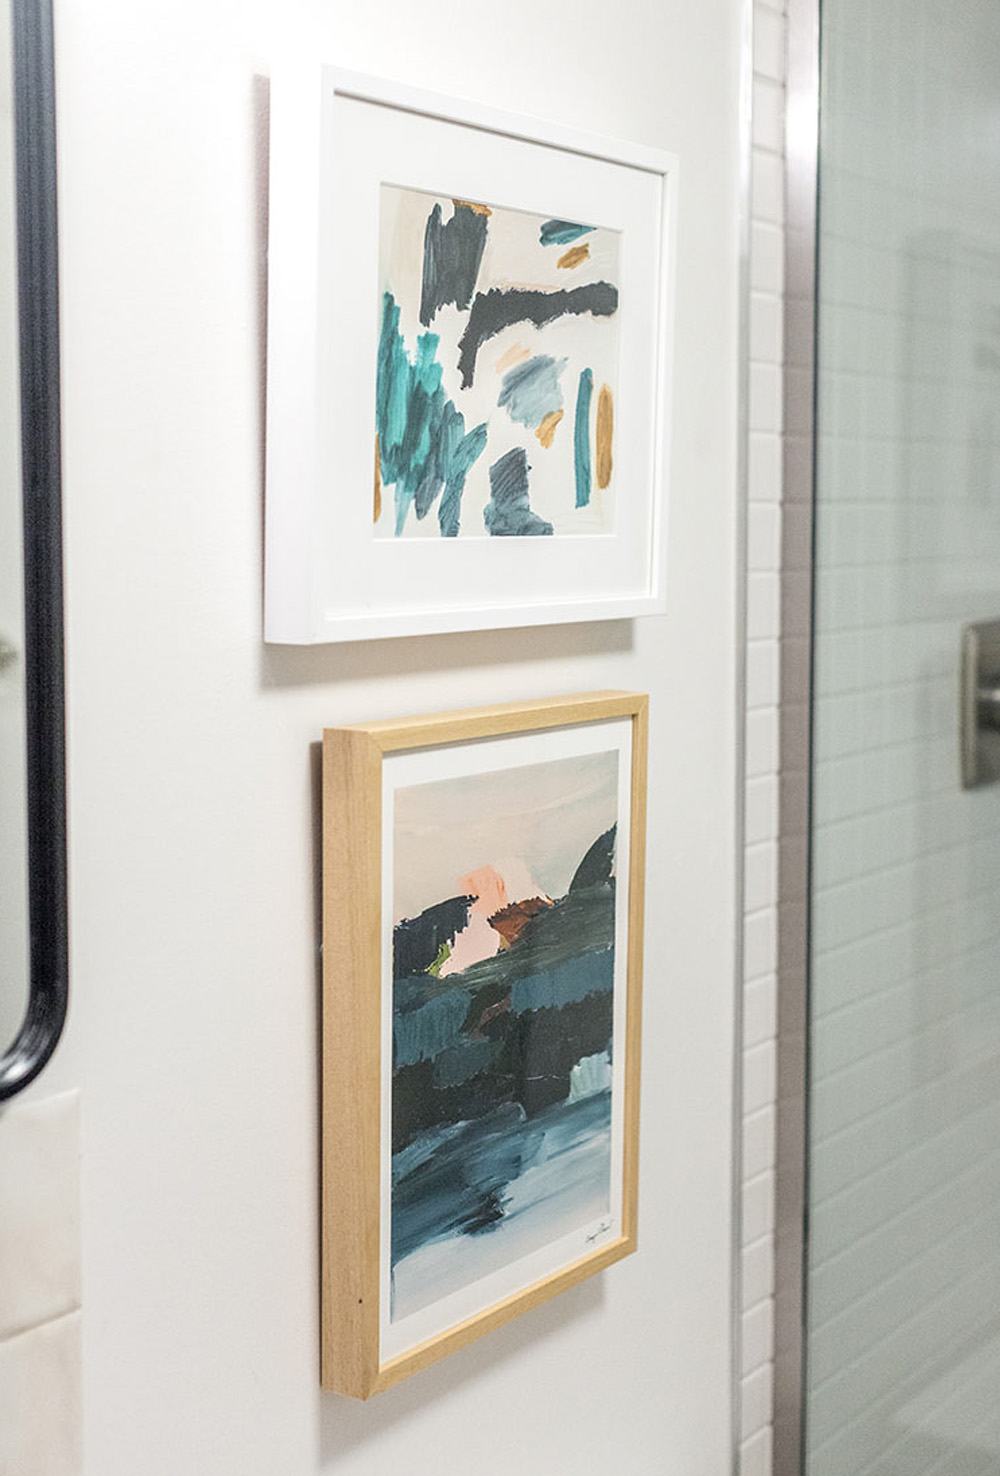 A white wall with two framed pieces of art work.